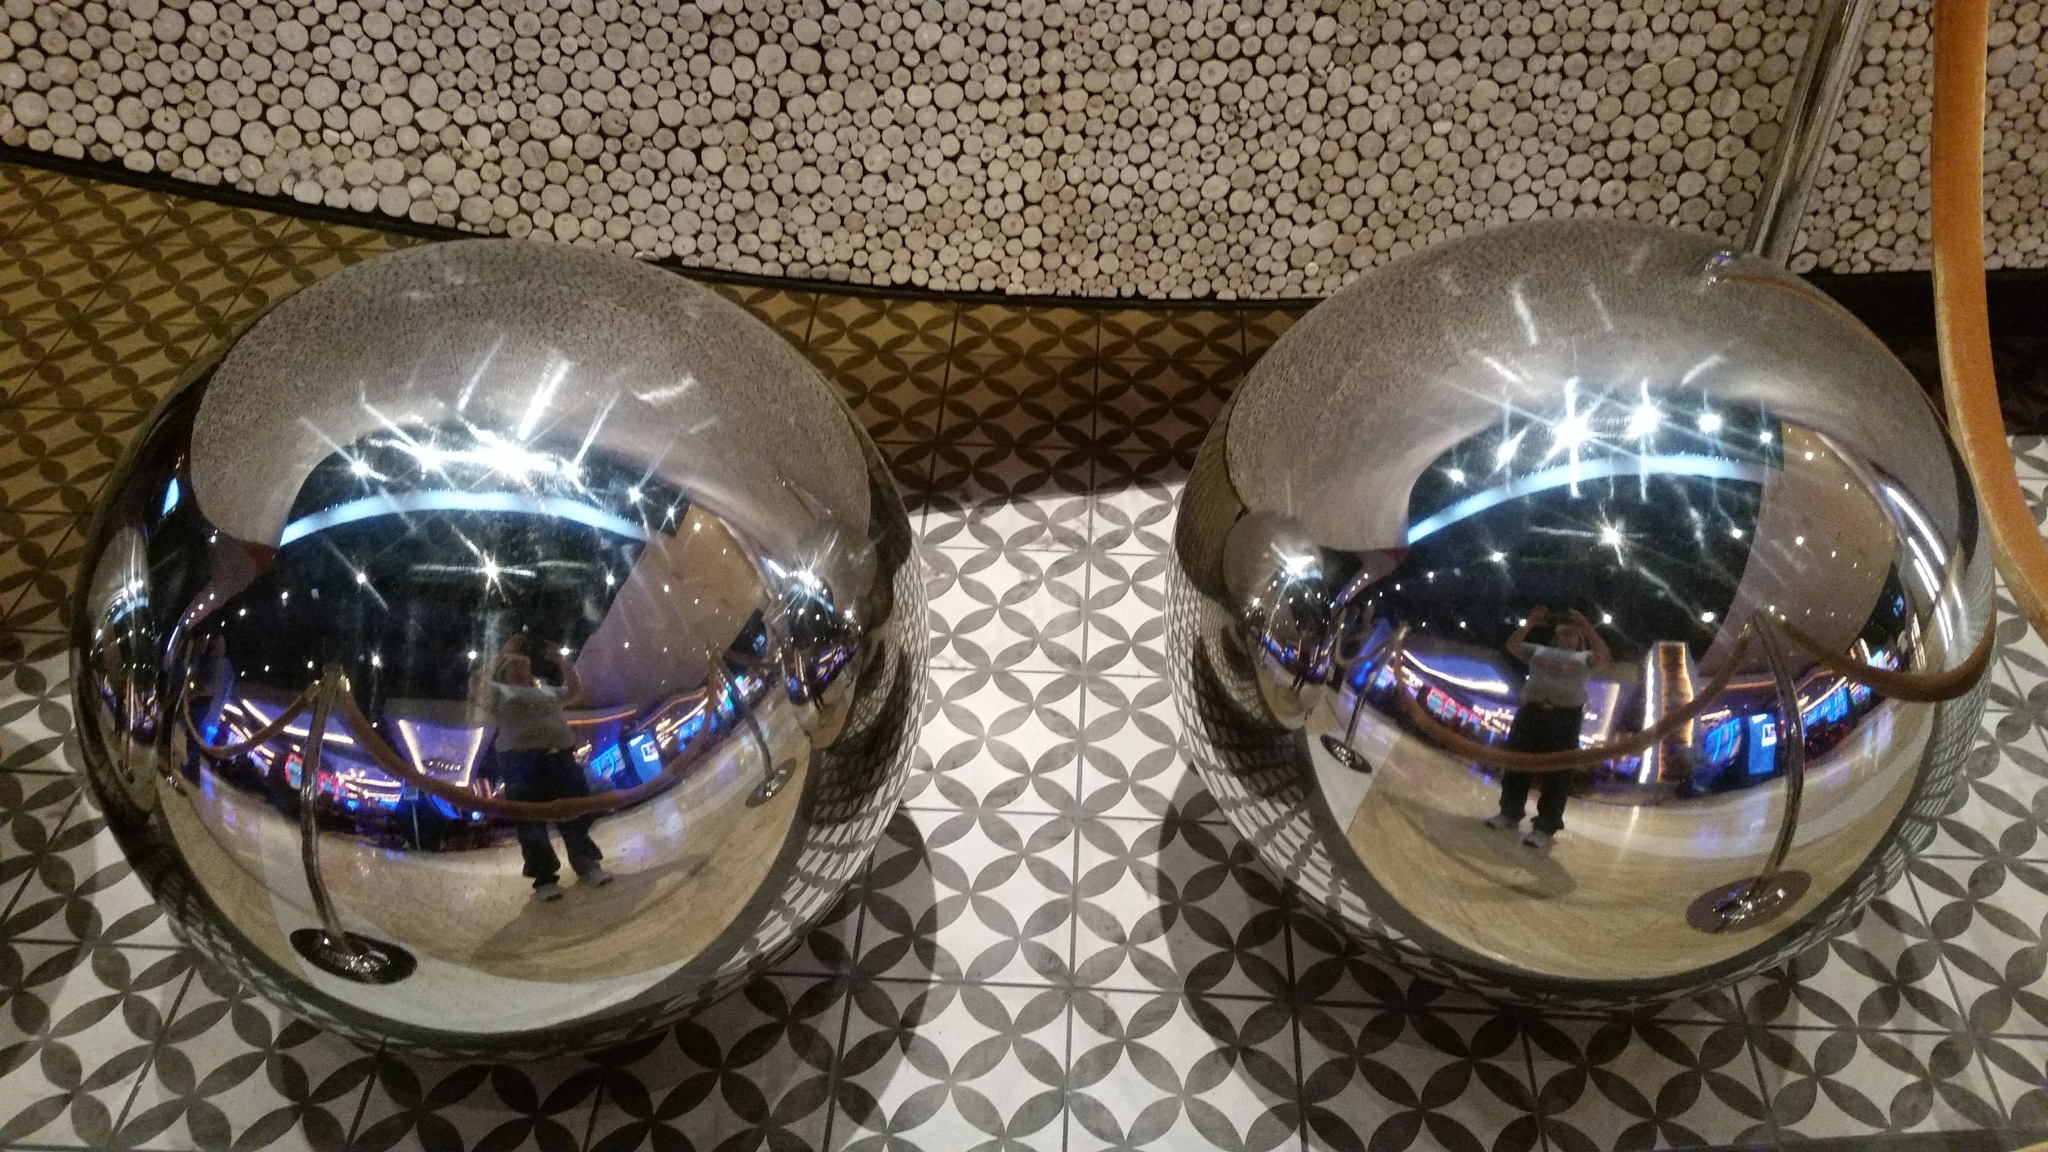 2 of 5 stainless steel balls by B56